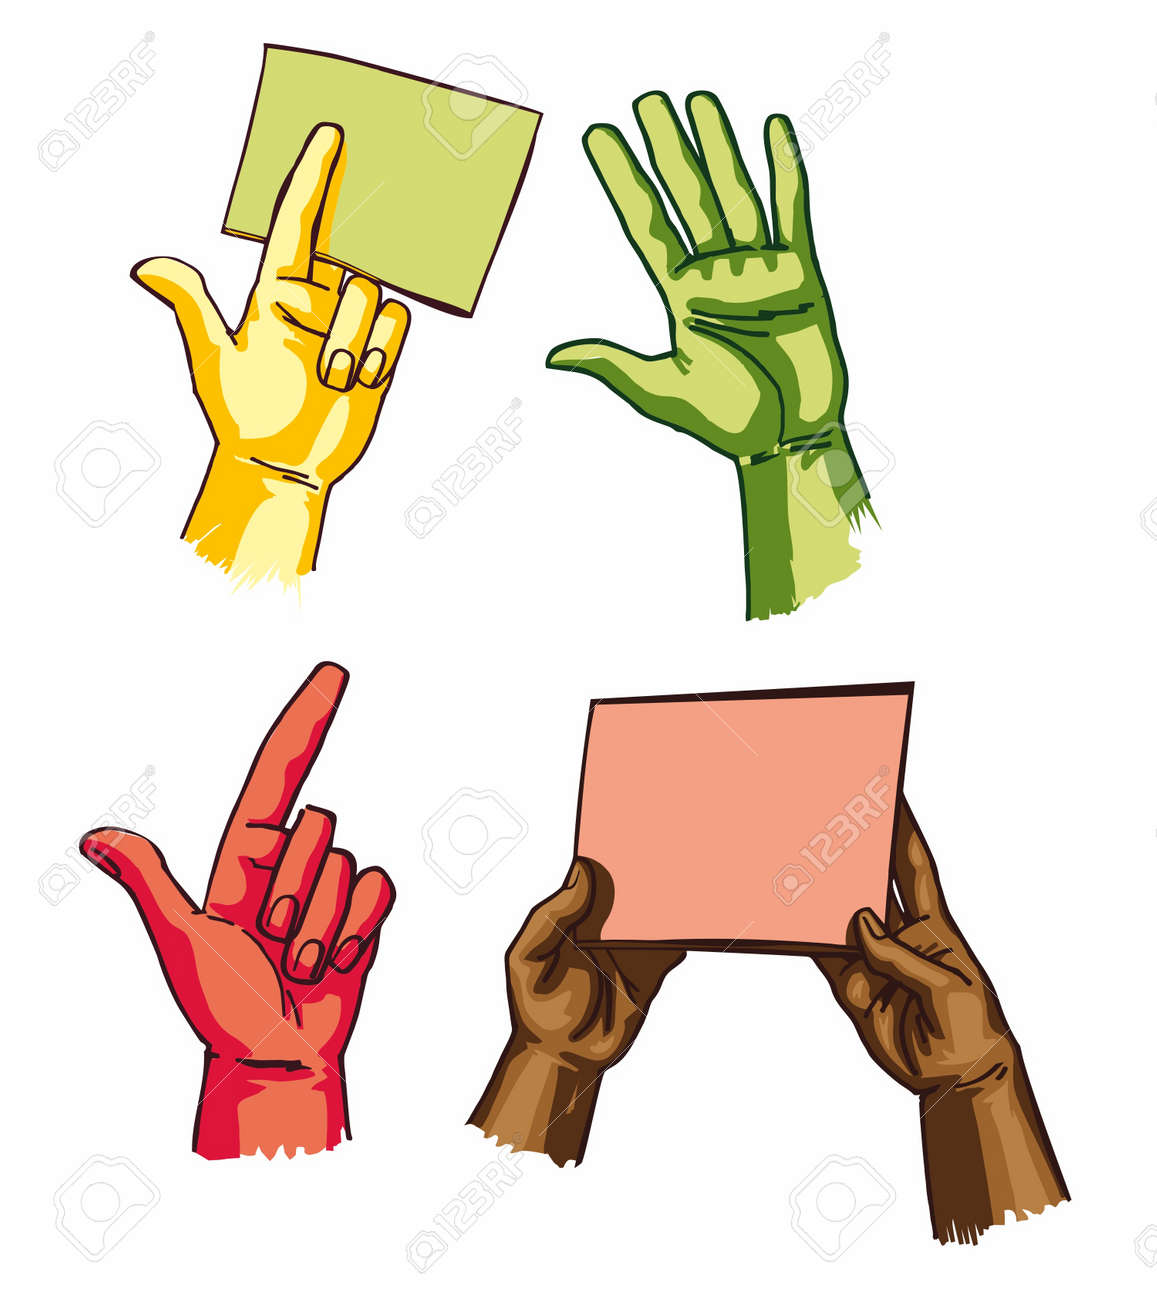 EPS vectors - hands holding the sheets and showing something Stock Vector - 9111009